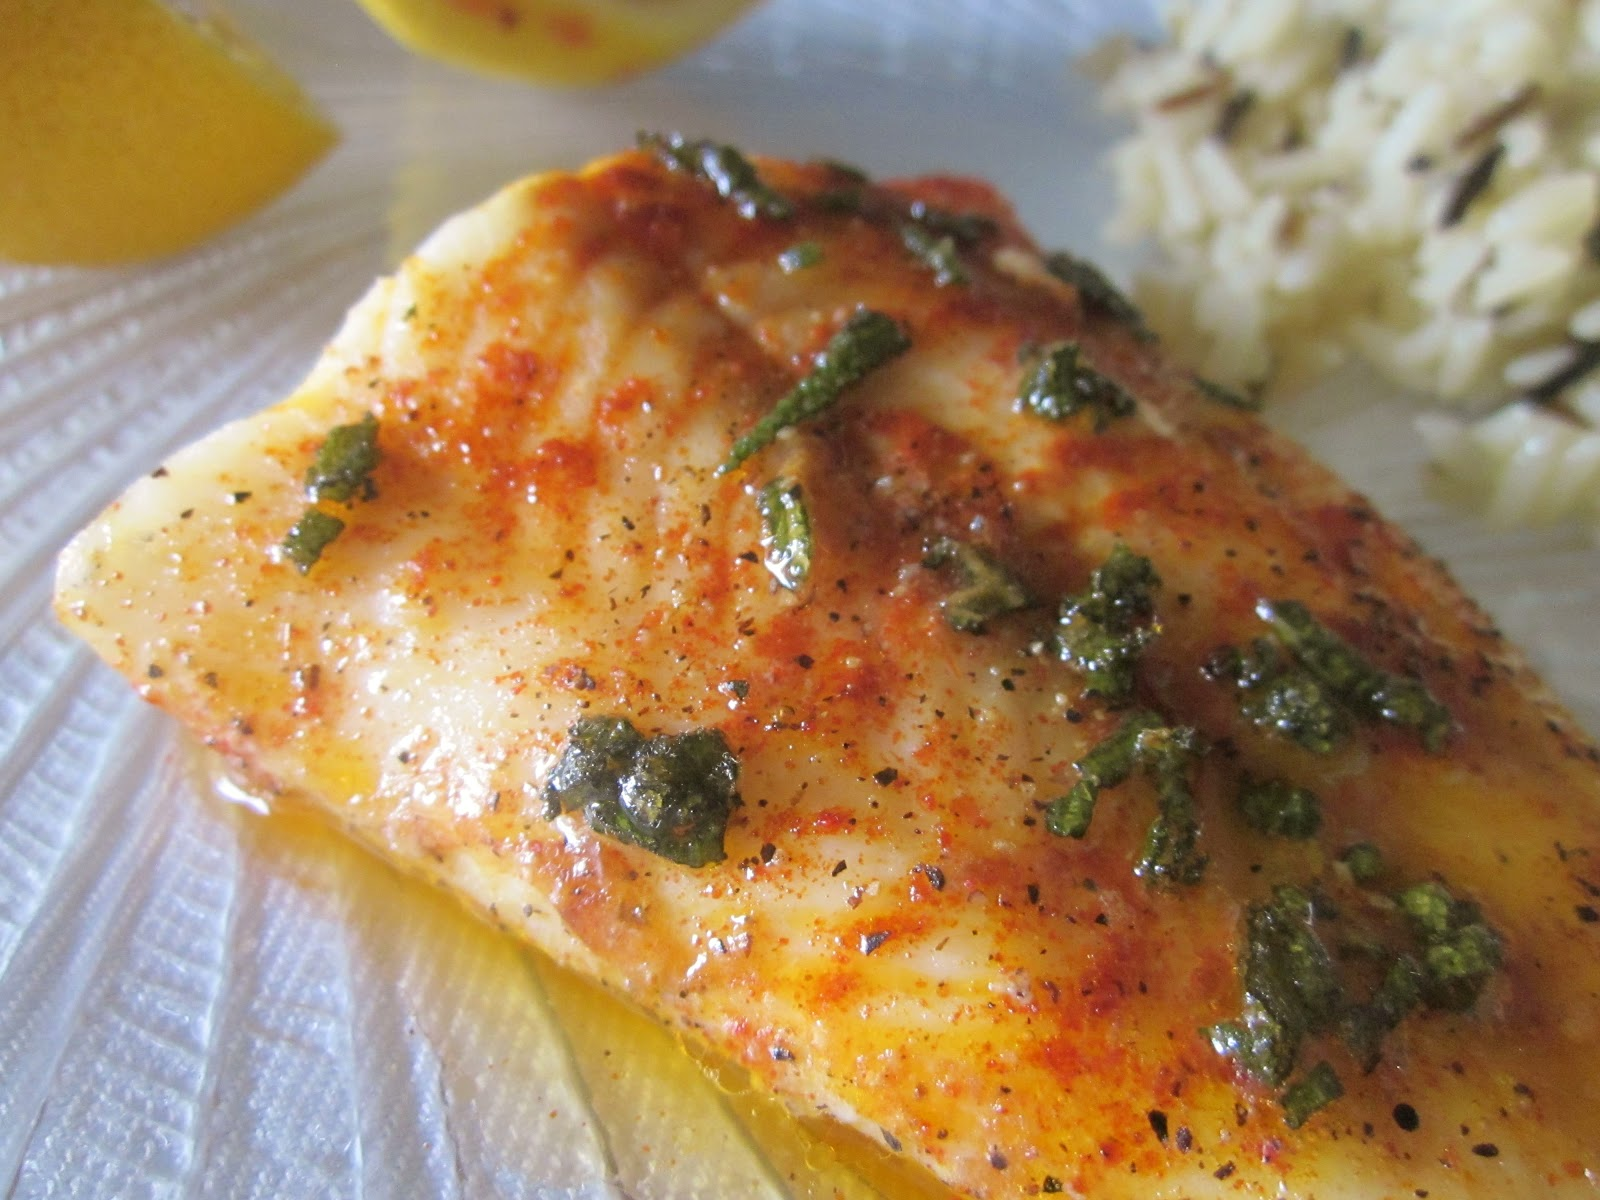 Dimples delights butter baked cod for Baking cod fish